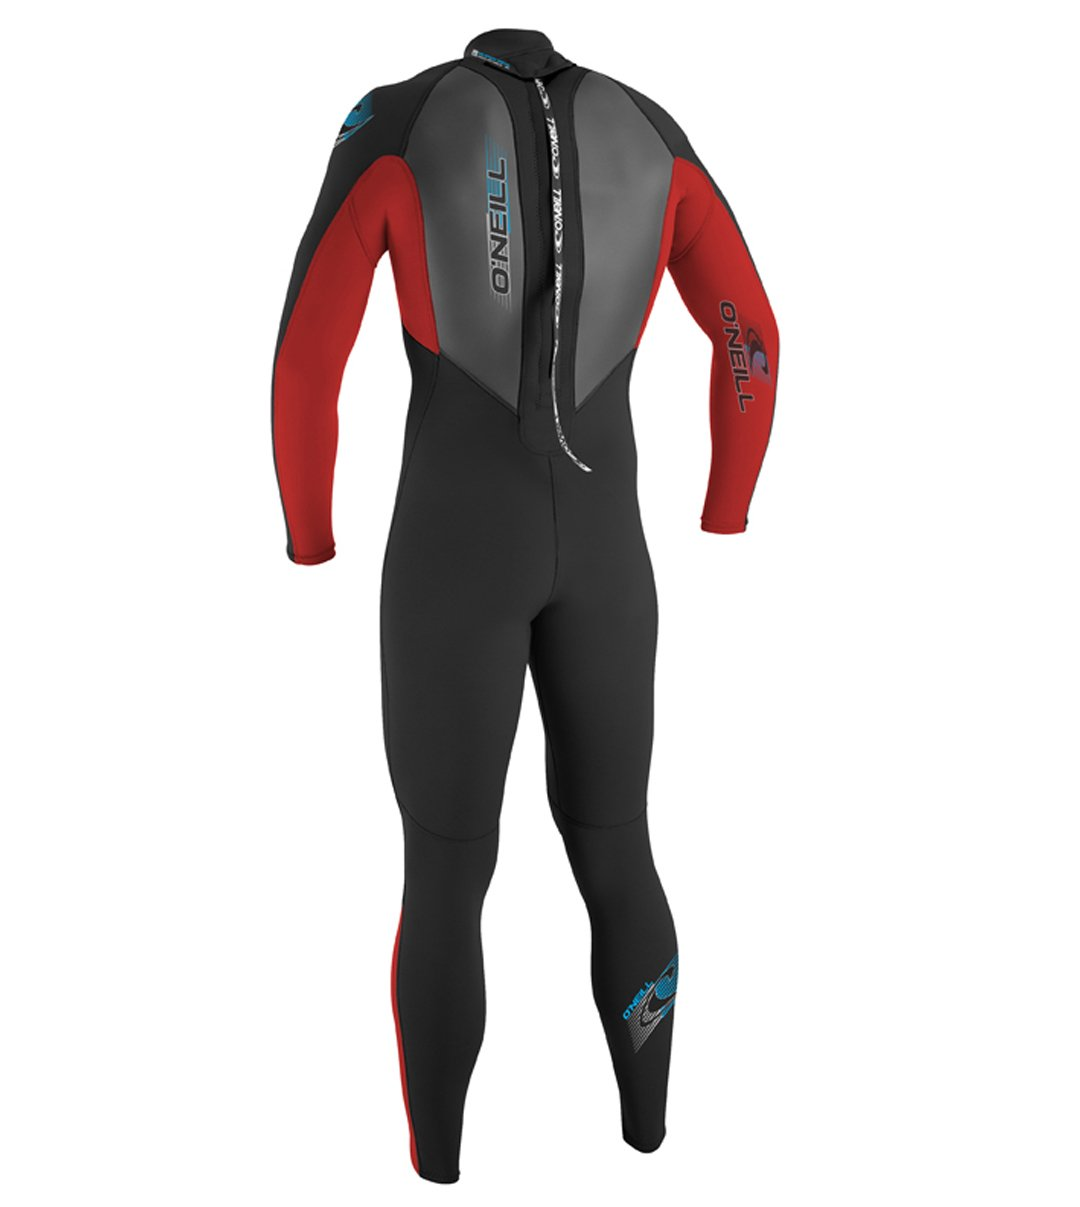 O'Neill Youth Reactor 3/2mm Back Zip Full Wetsuit, Black/Red/Graphite, 8 by O'Neill Wetsuits (Image #2)